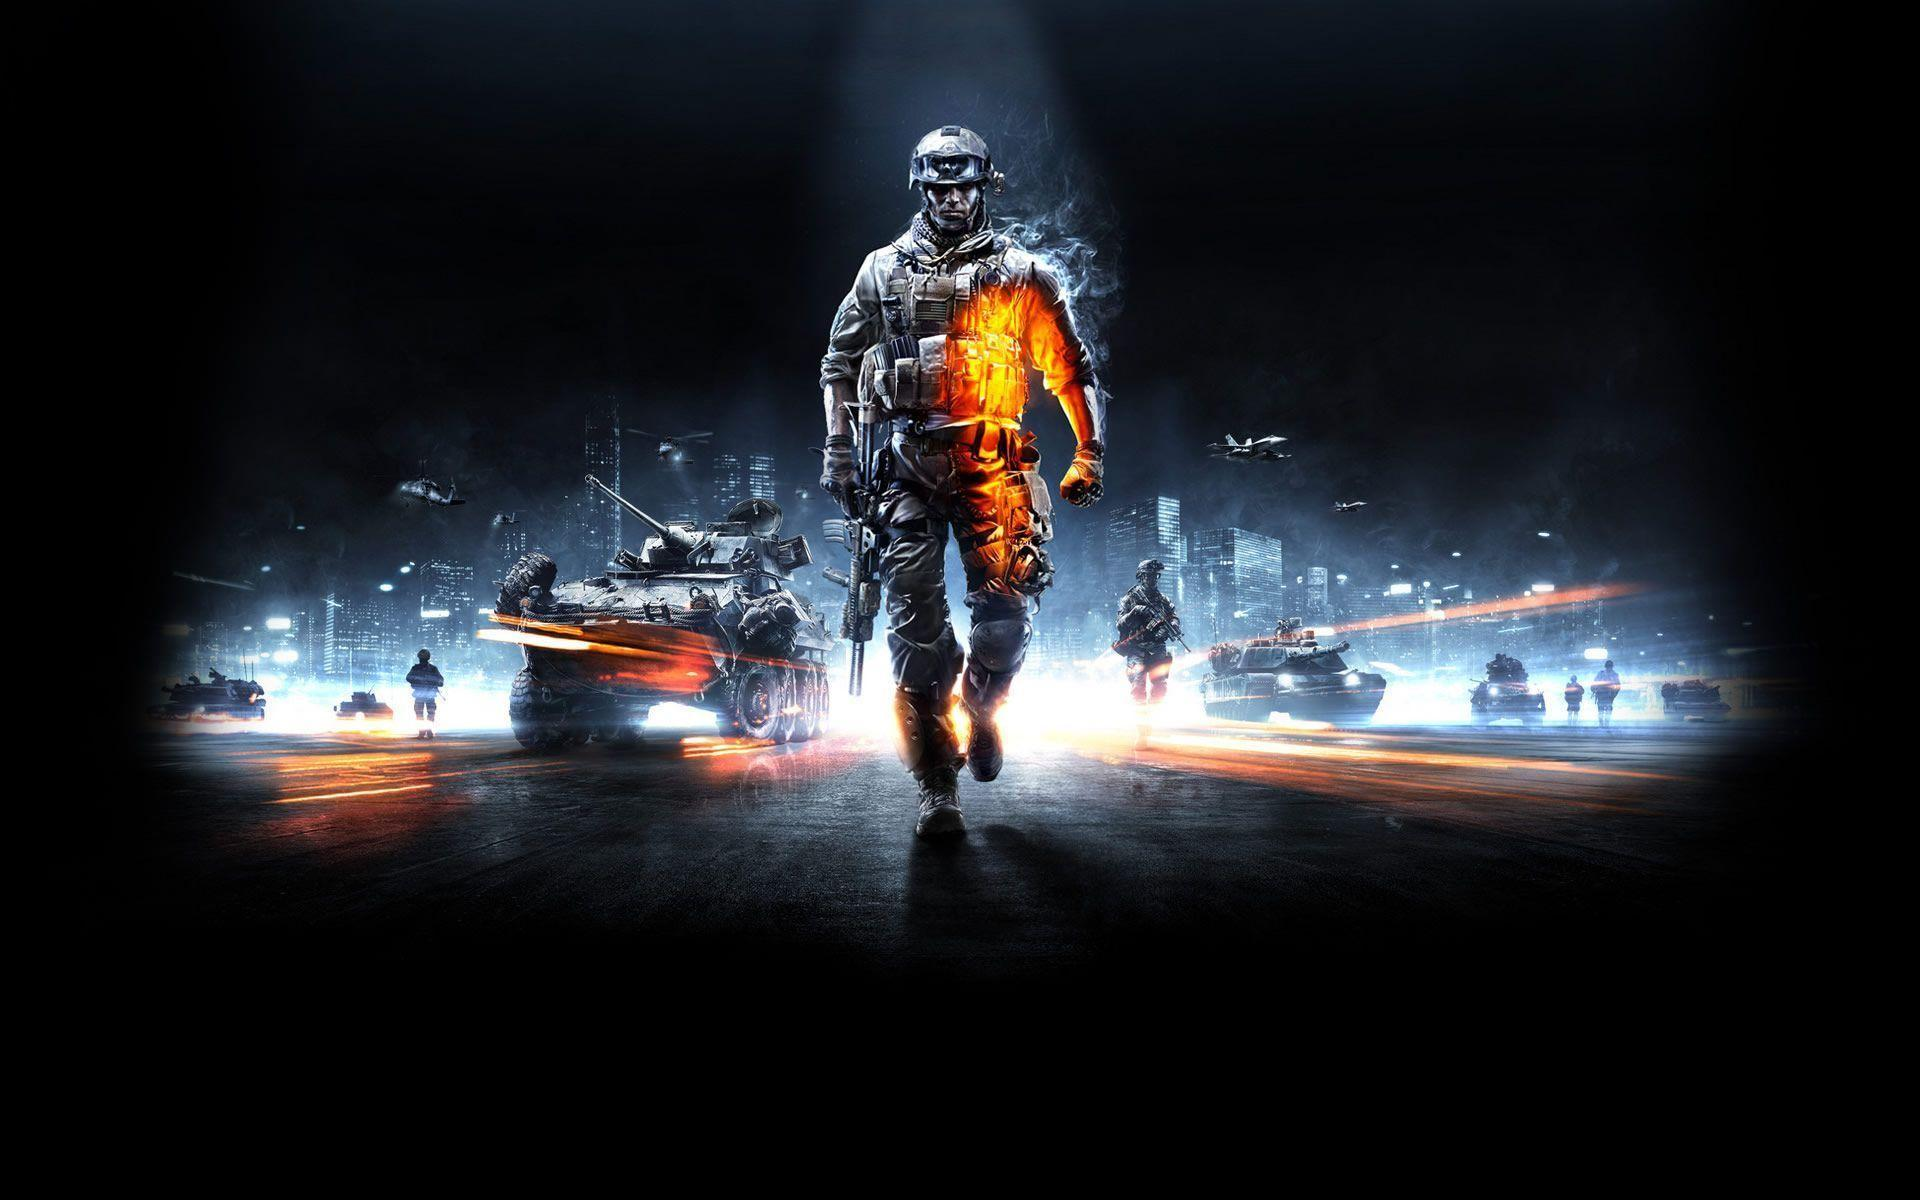 16 Amazing Battlefield 3 Theme HD Wallpapers | CrispMe